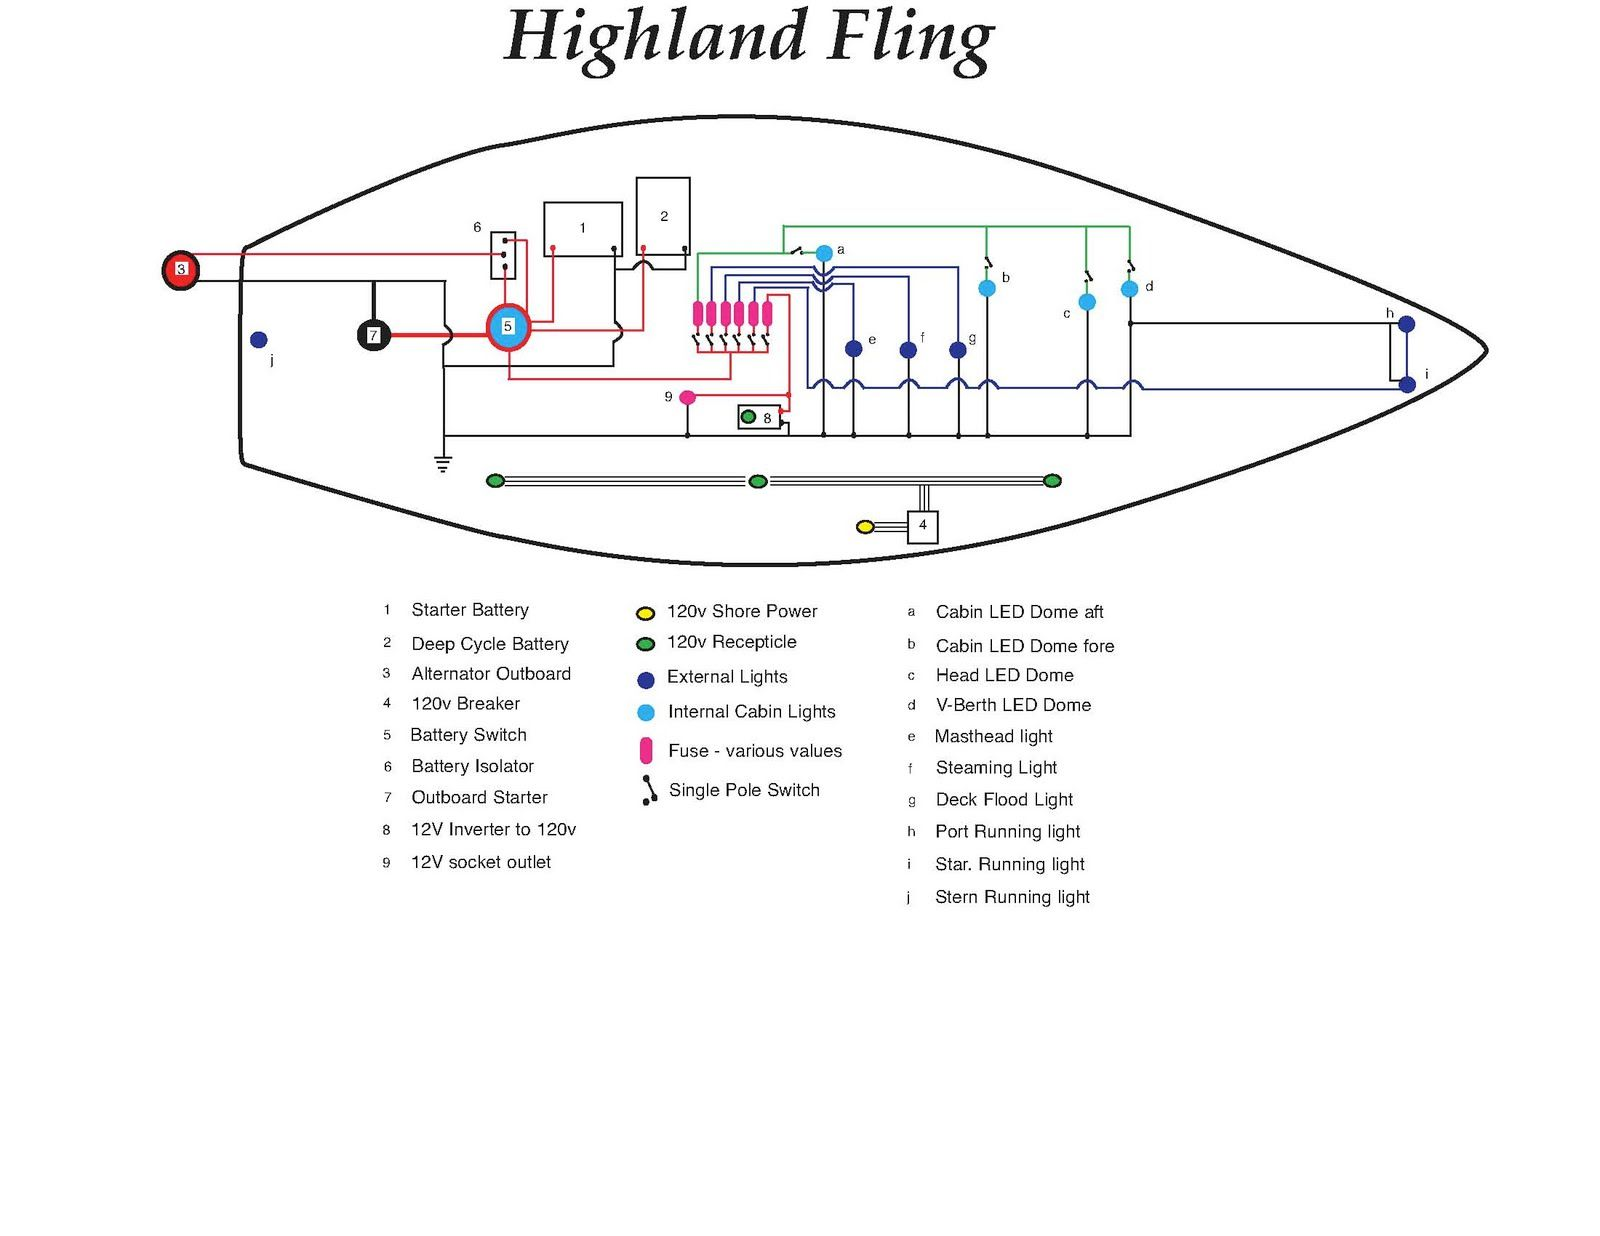 highland fling my grampian 26 sailboat wiring diagram sailboats rh pinterest com sailboat electrical wiring diagram Sailboat Electrical Diagram Battery